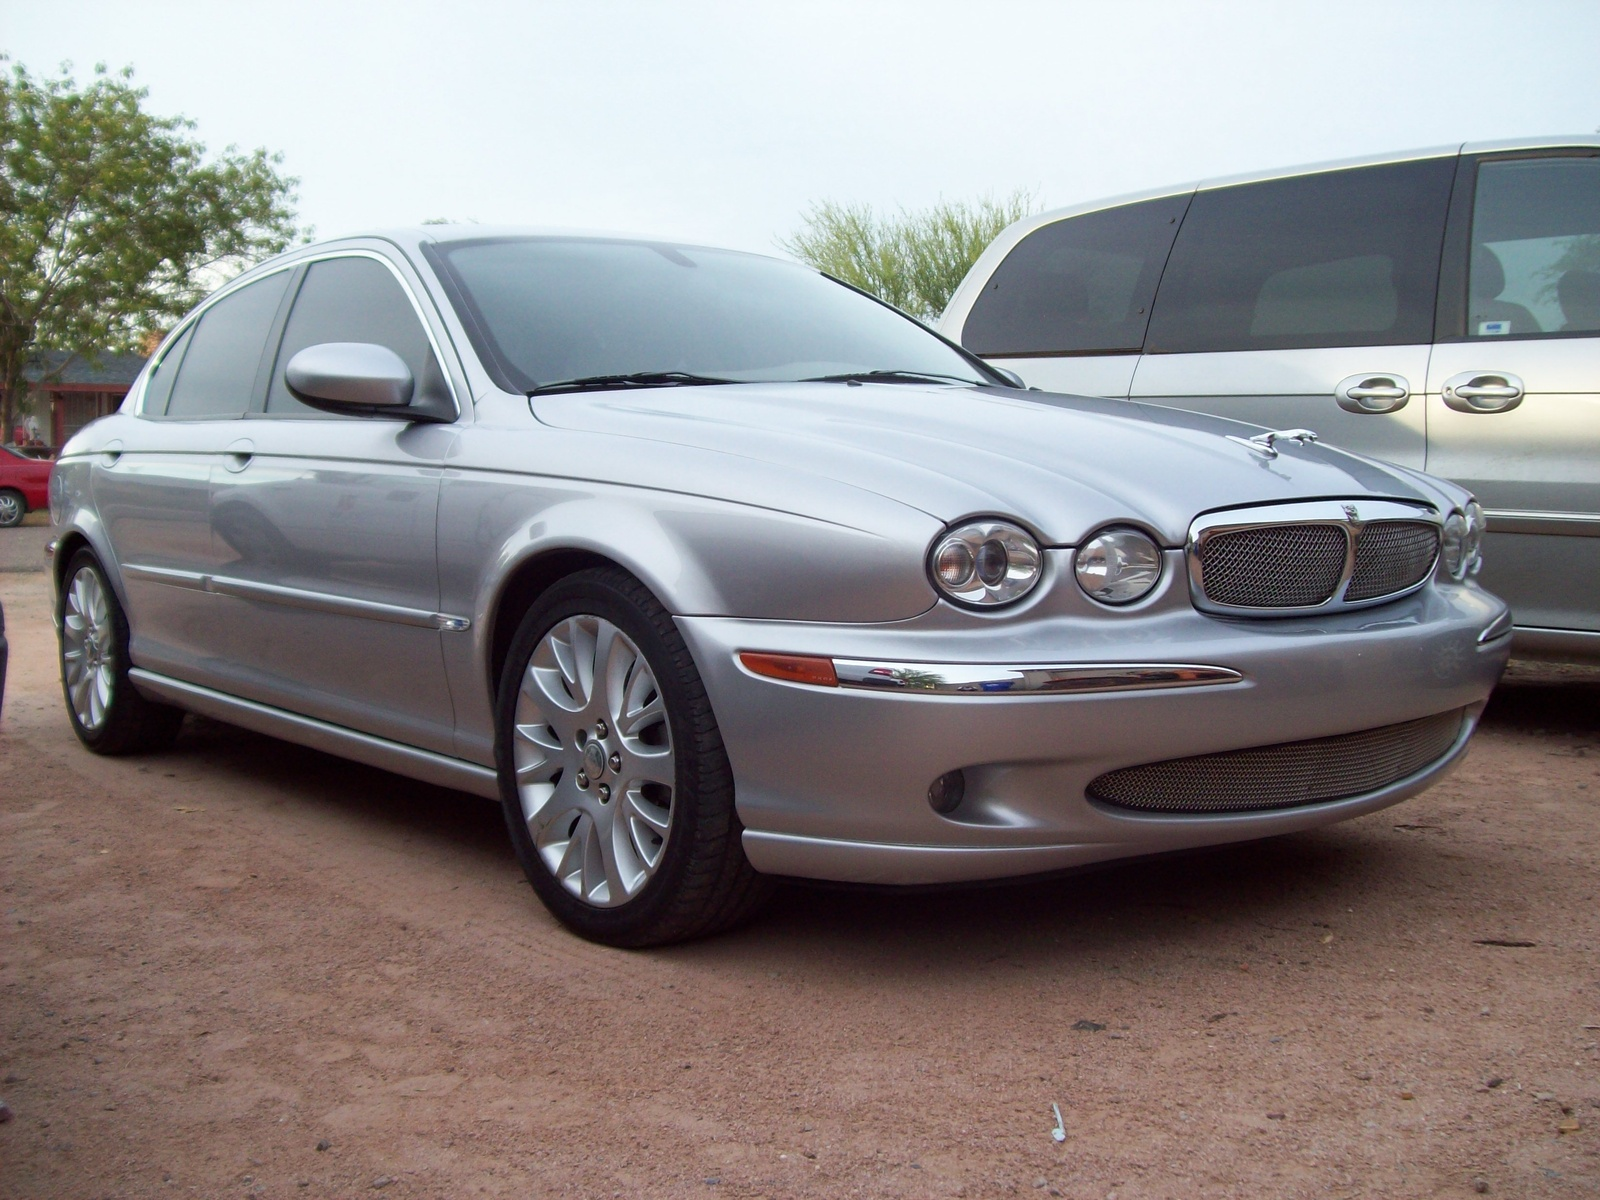 2003 Jaguar X-Type 3.0 picture